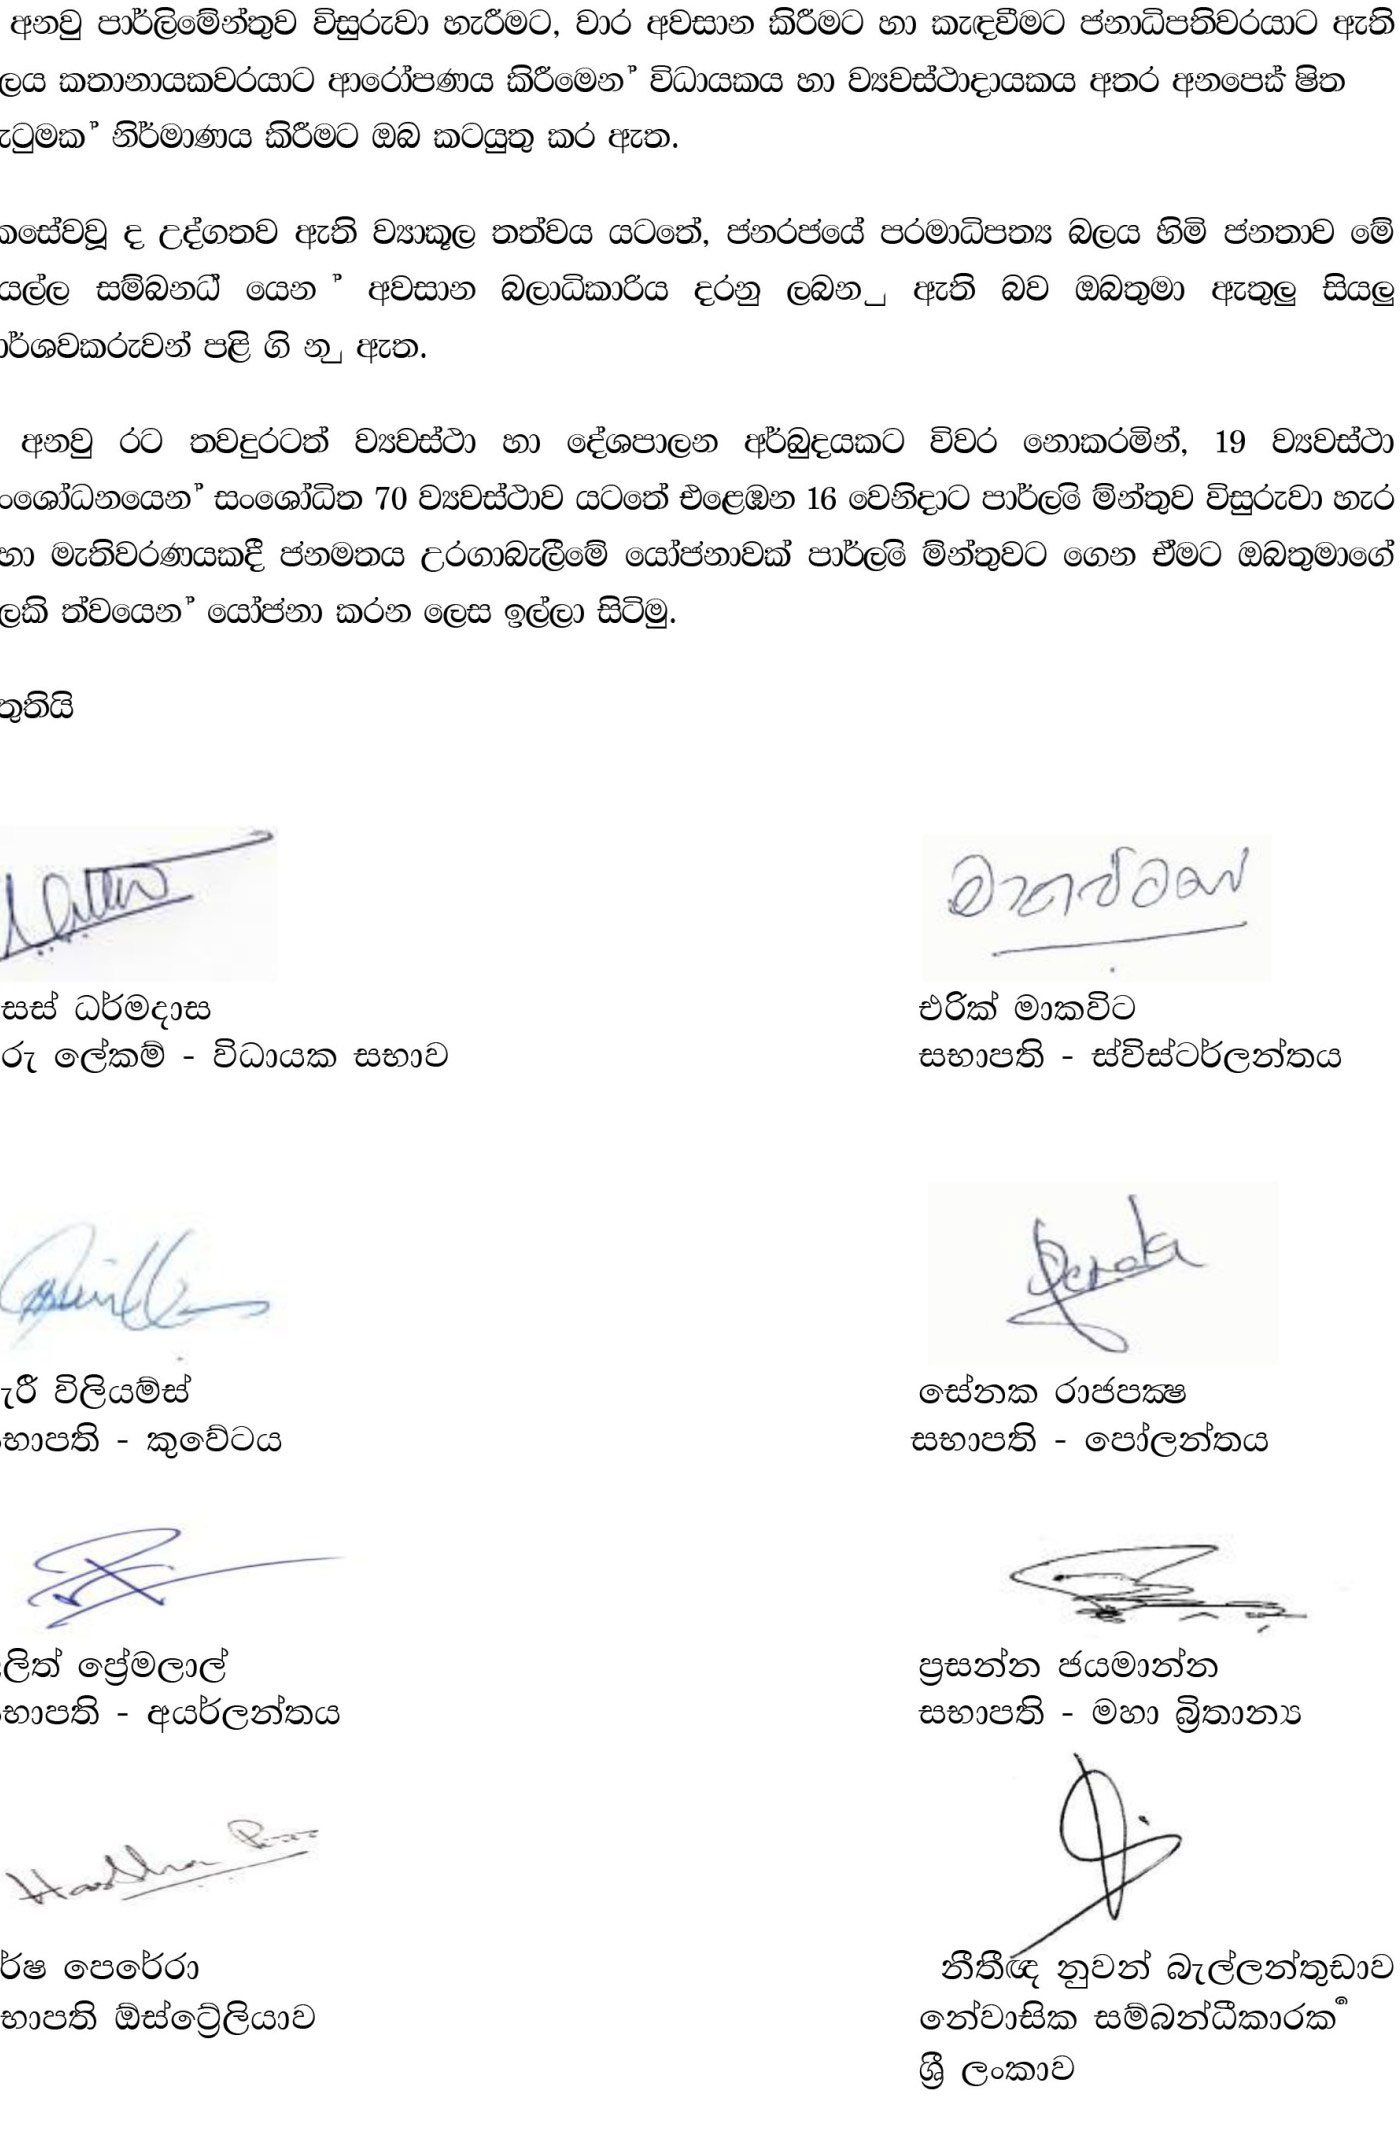 Letter-to-Ranil-Wickramasinghe_2-2